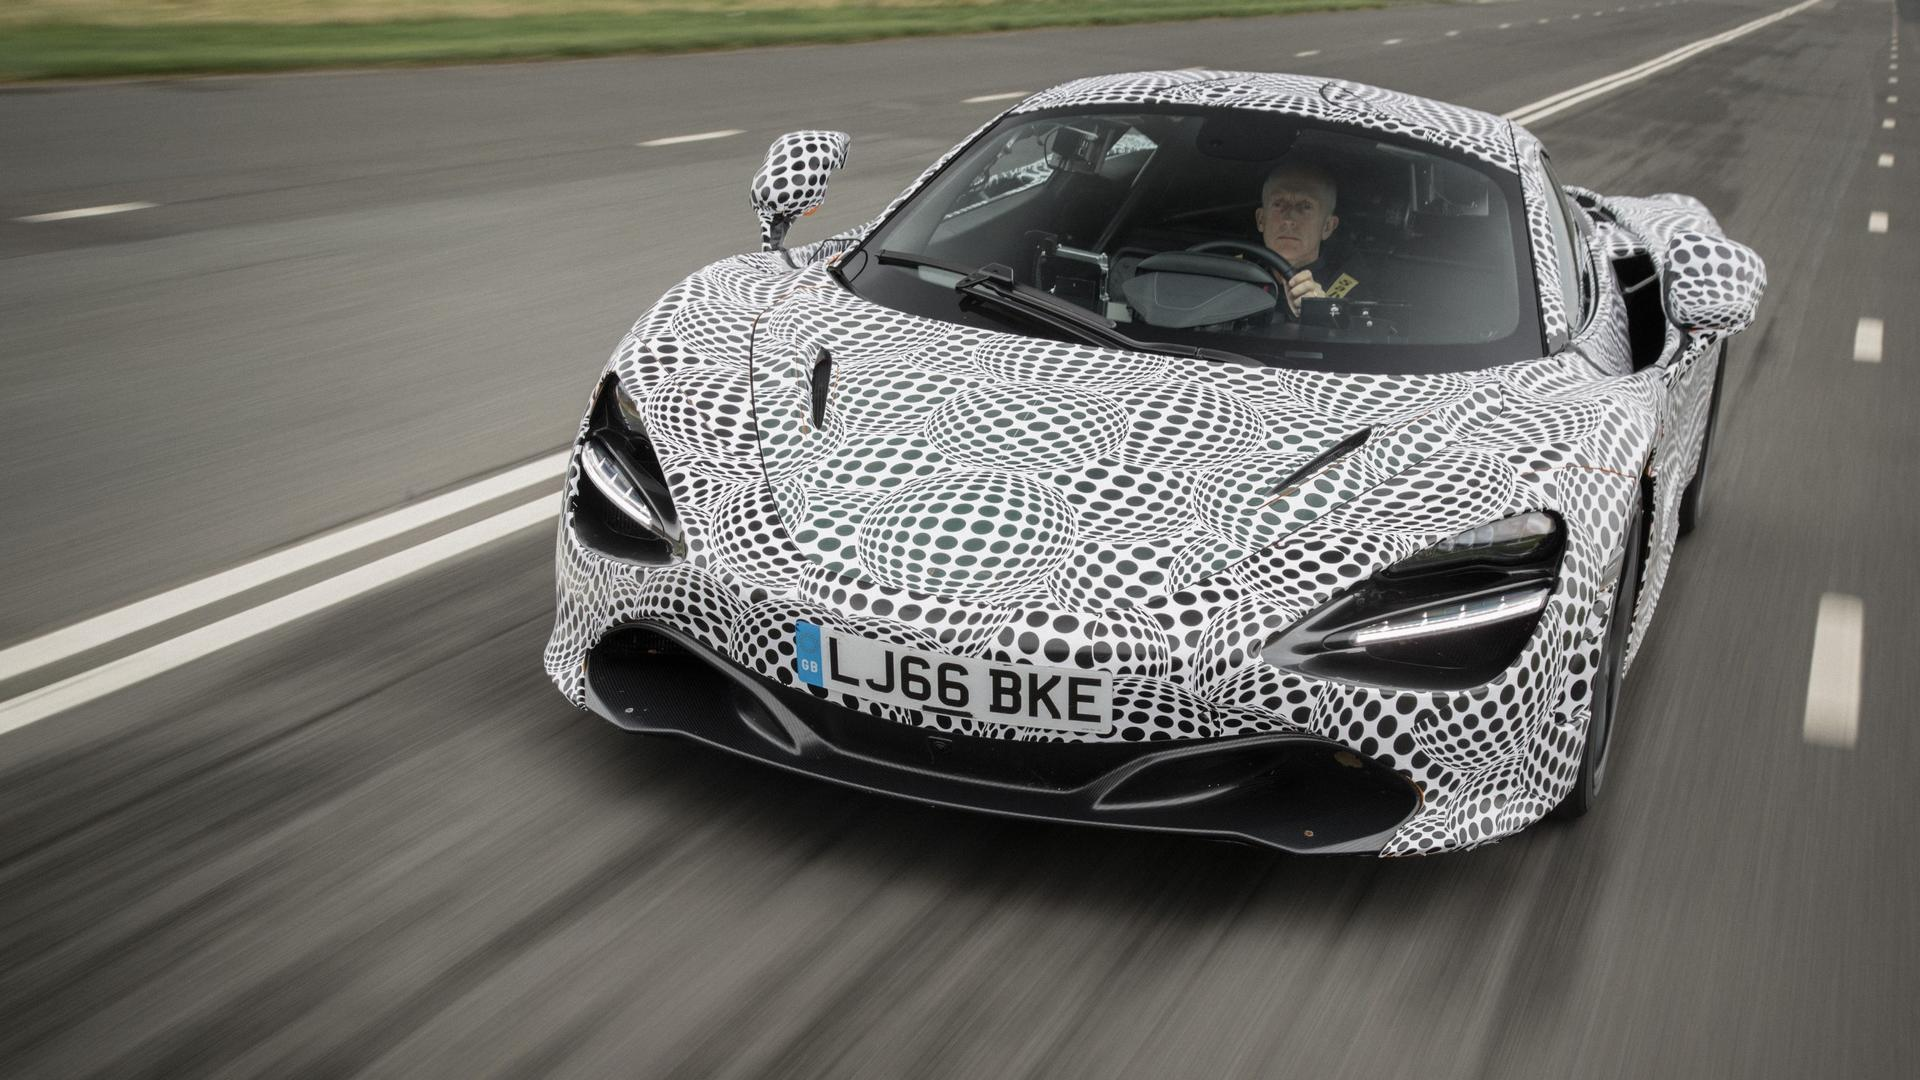 McLaren says its testing a pure-electric hypercar